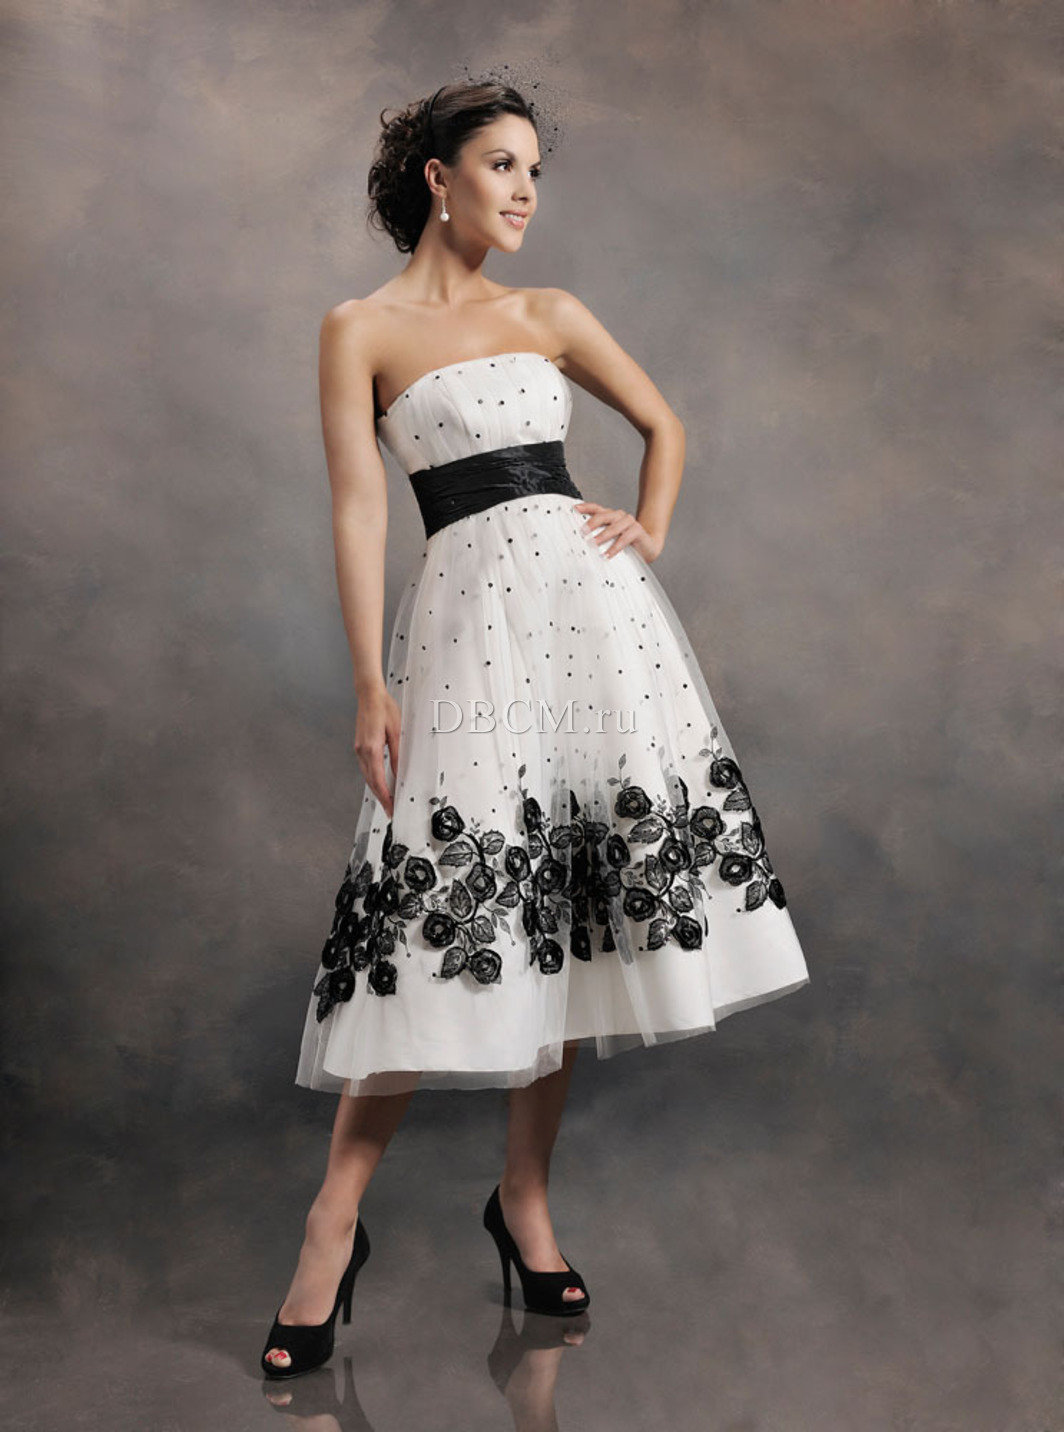 Strapless tea-length wedding dress black and white